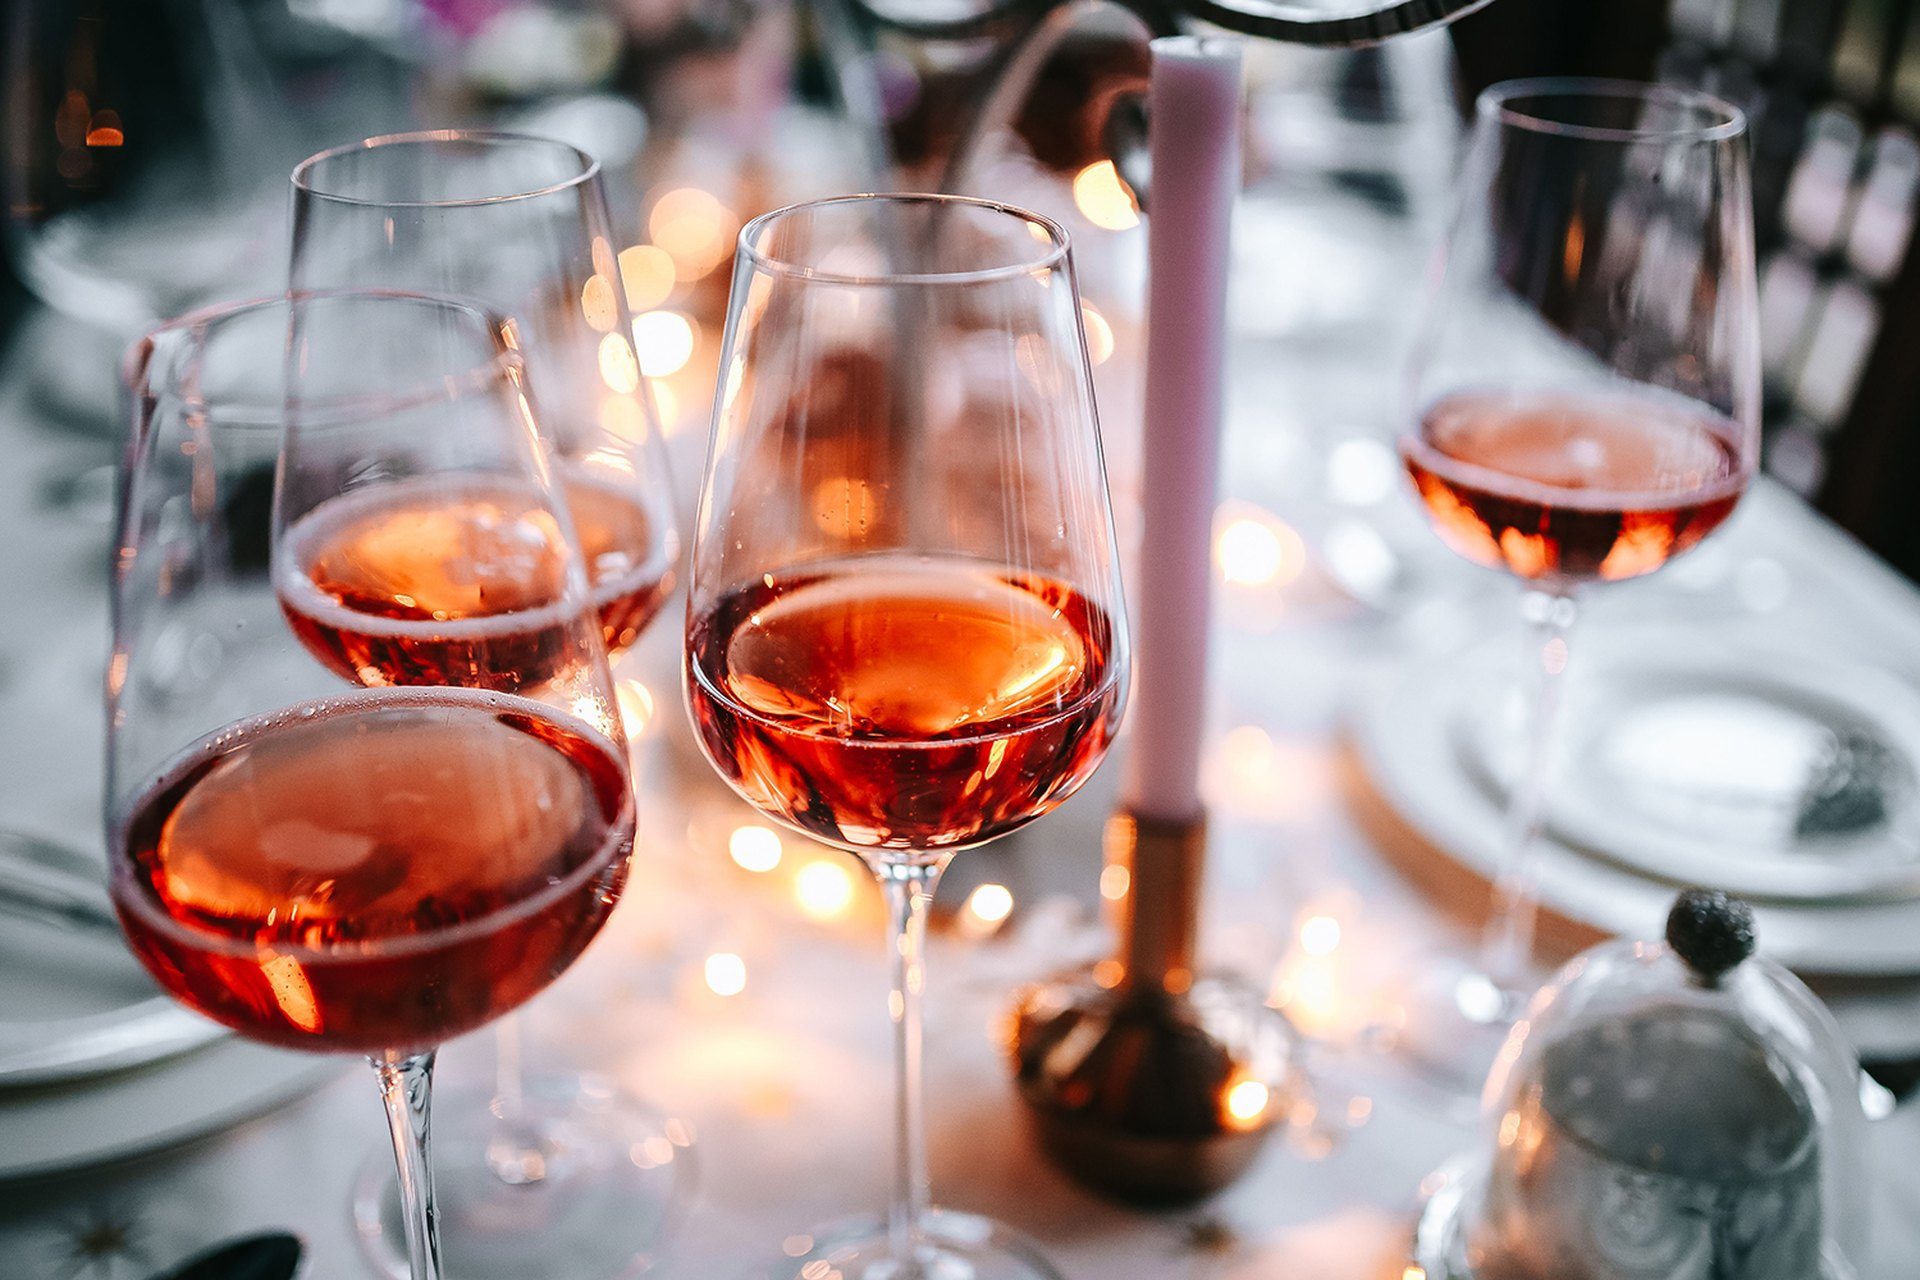 What Are the Health Benefits of Rose Wine? | LIVESTRONG.COM